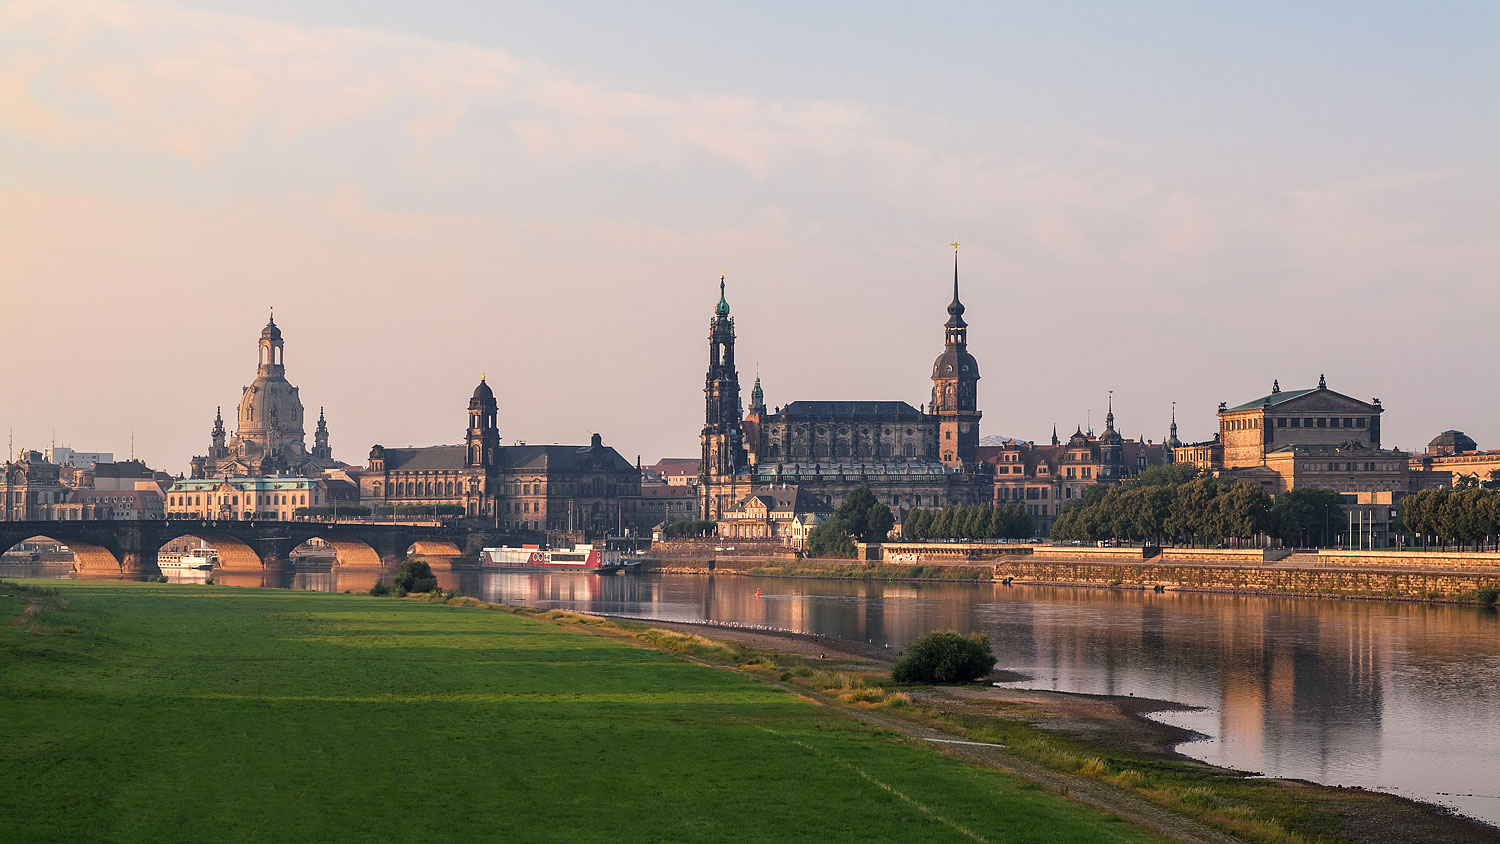 Panorama of the city Dresden in Germany featuring the Frauenkirche, Residenzschloss and Semperoper